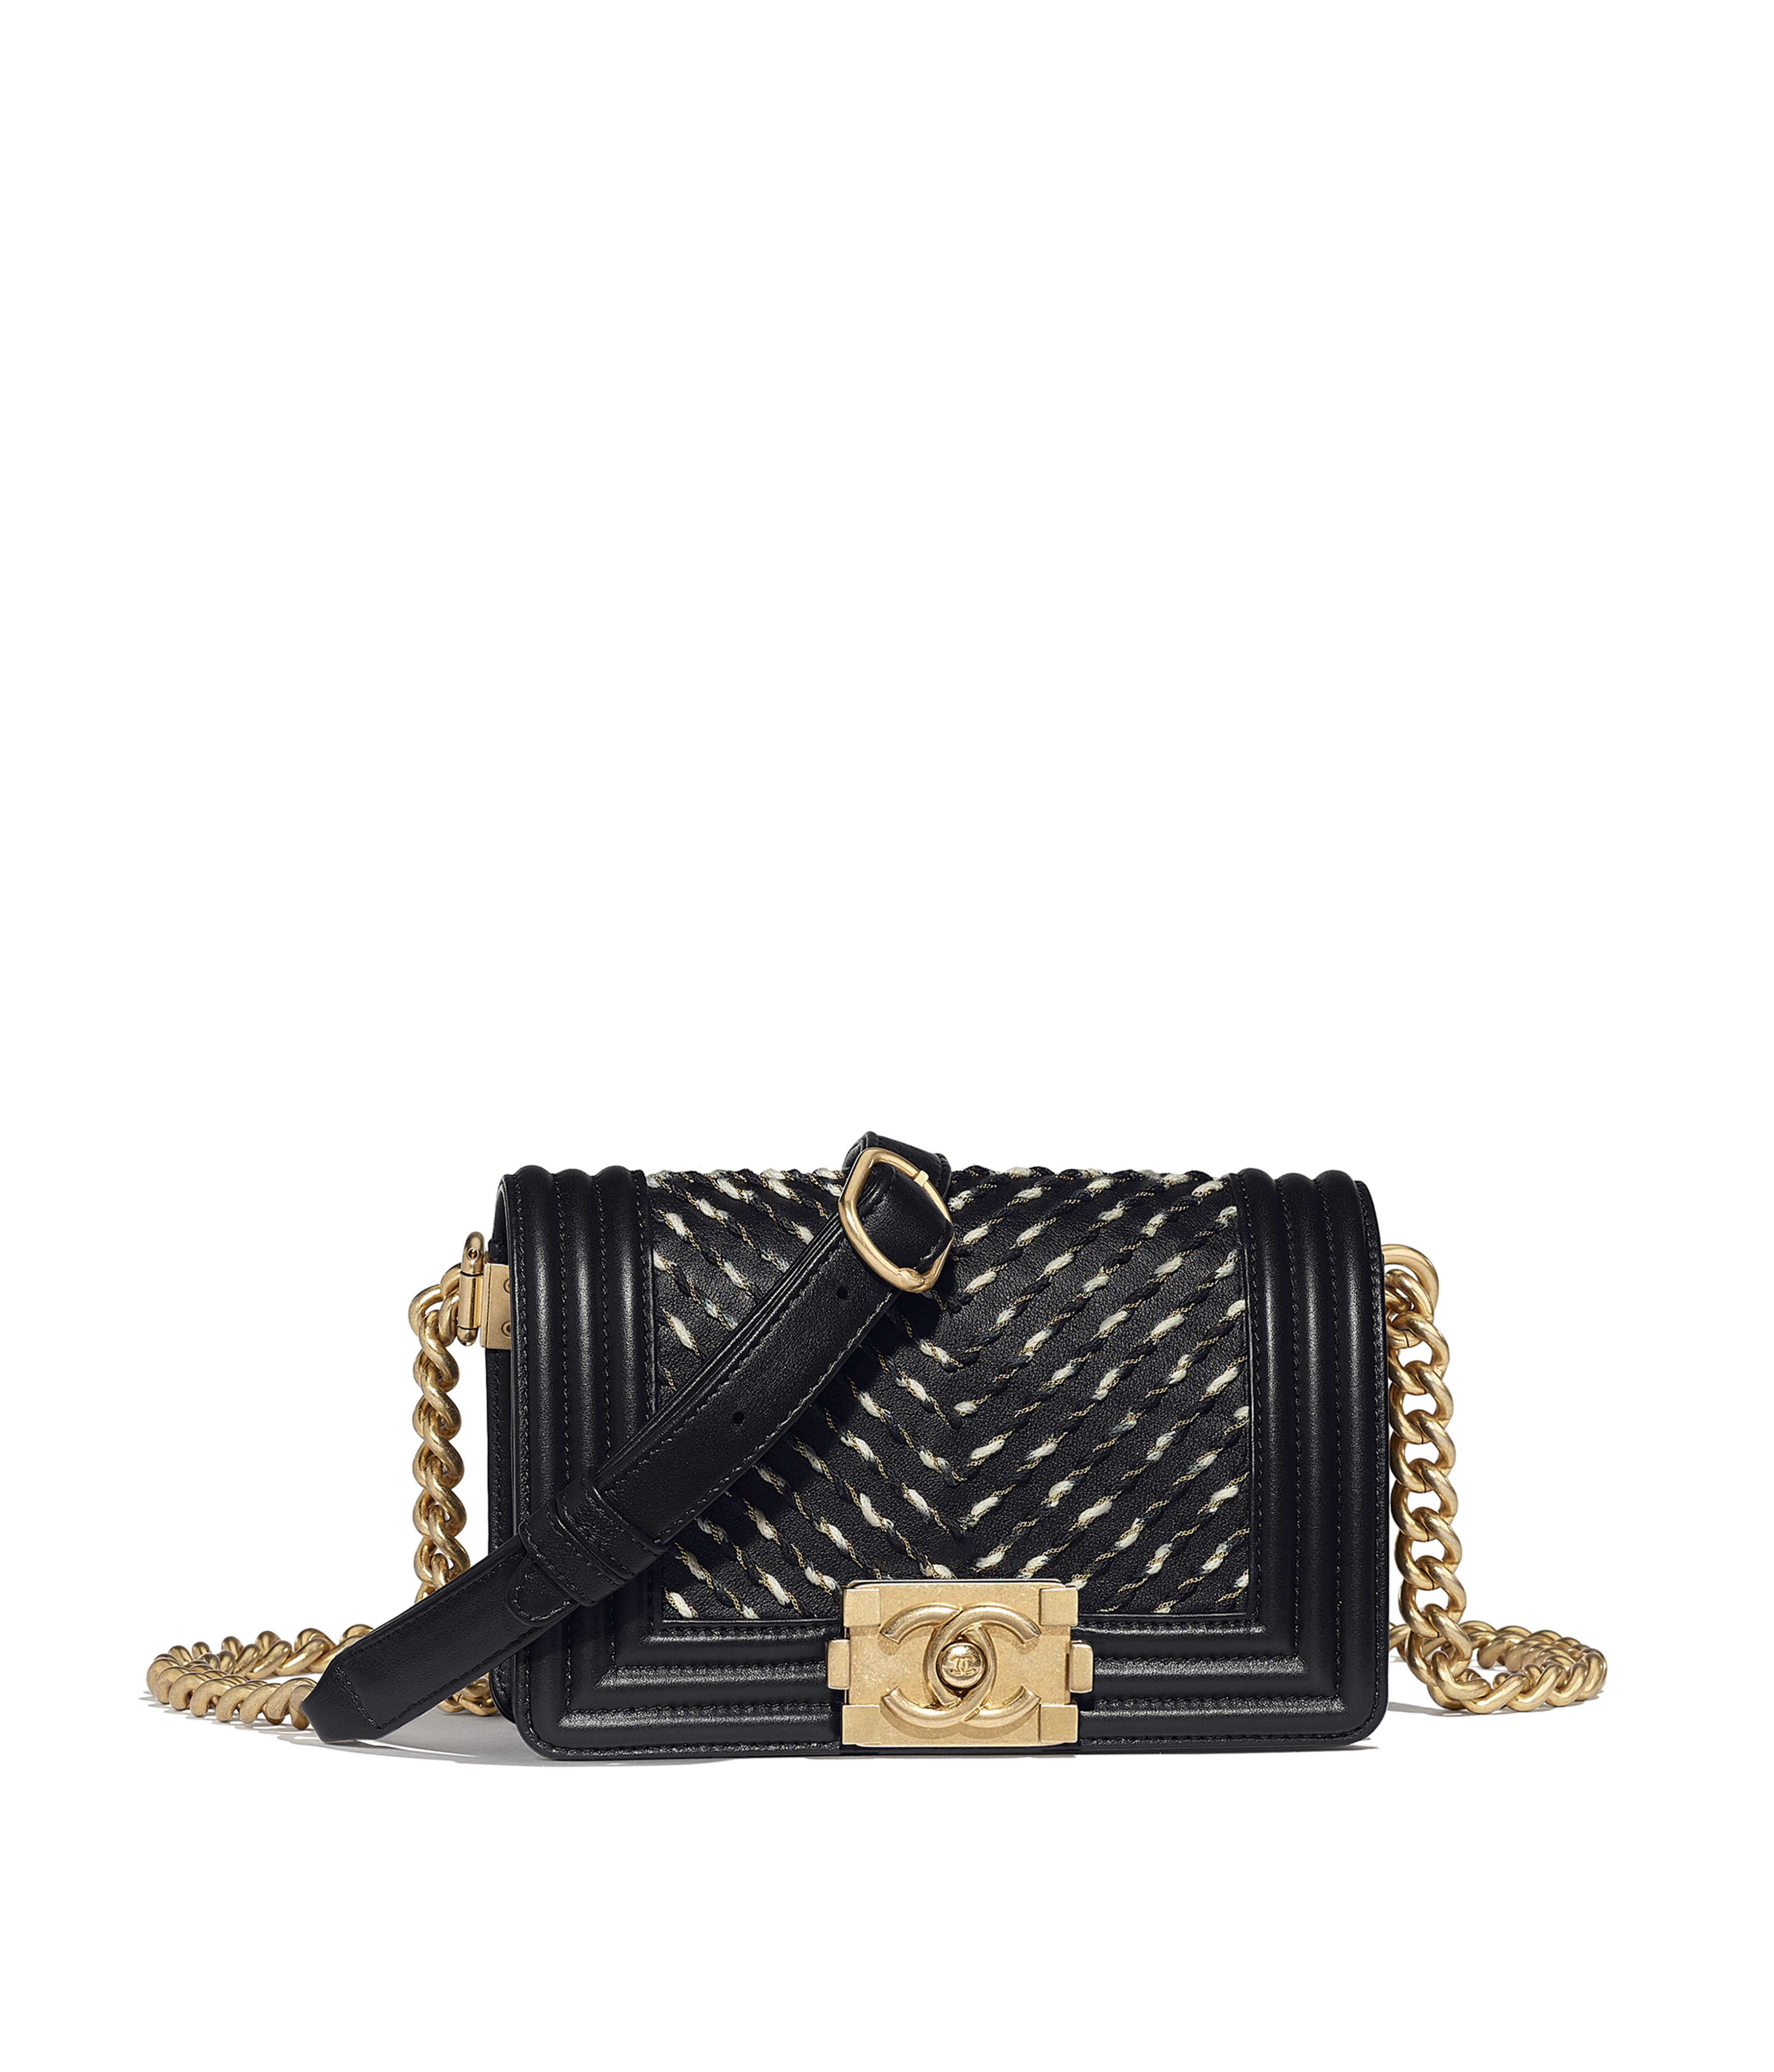 763b79dcf5b1 Waist Bag Embroidered Calfskin & Gold-Tone Metal, Black Ref.  AS0093Y8412094305